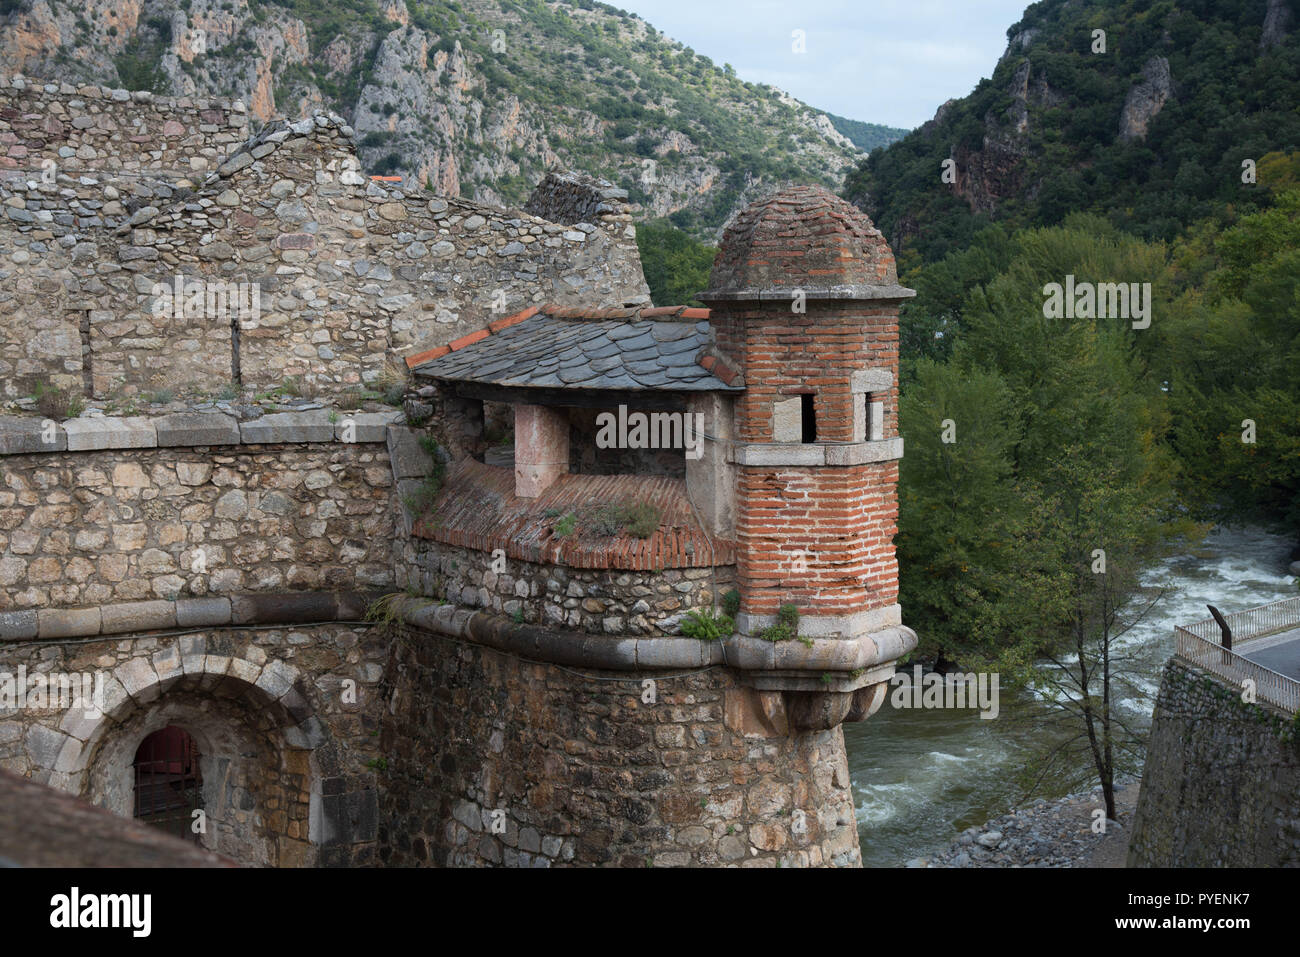 Medieval city Villefranche de Conflent in the Pyrenees mountains in France - Stock Image